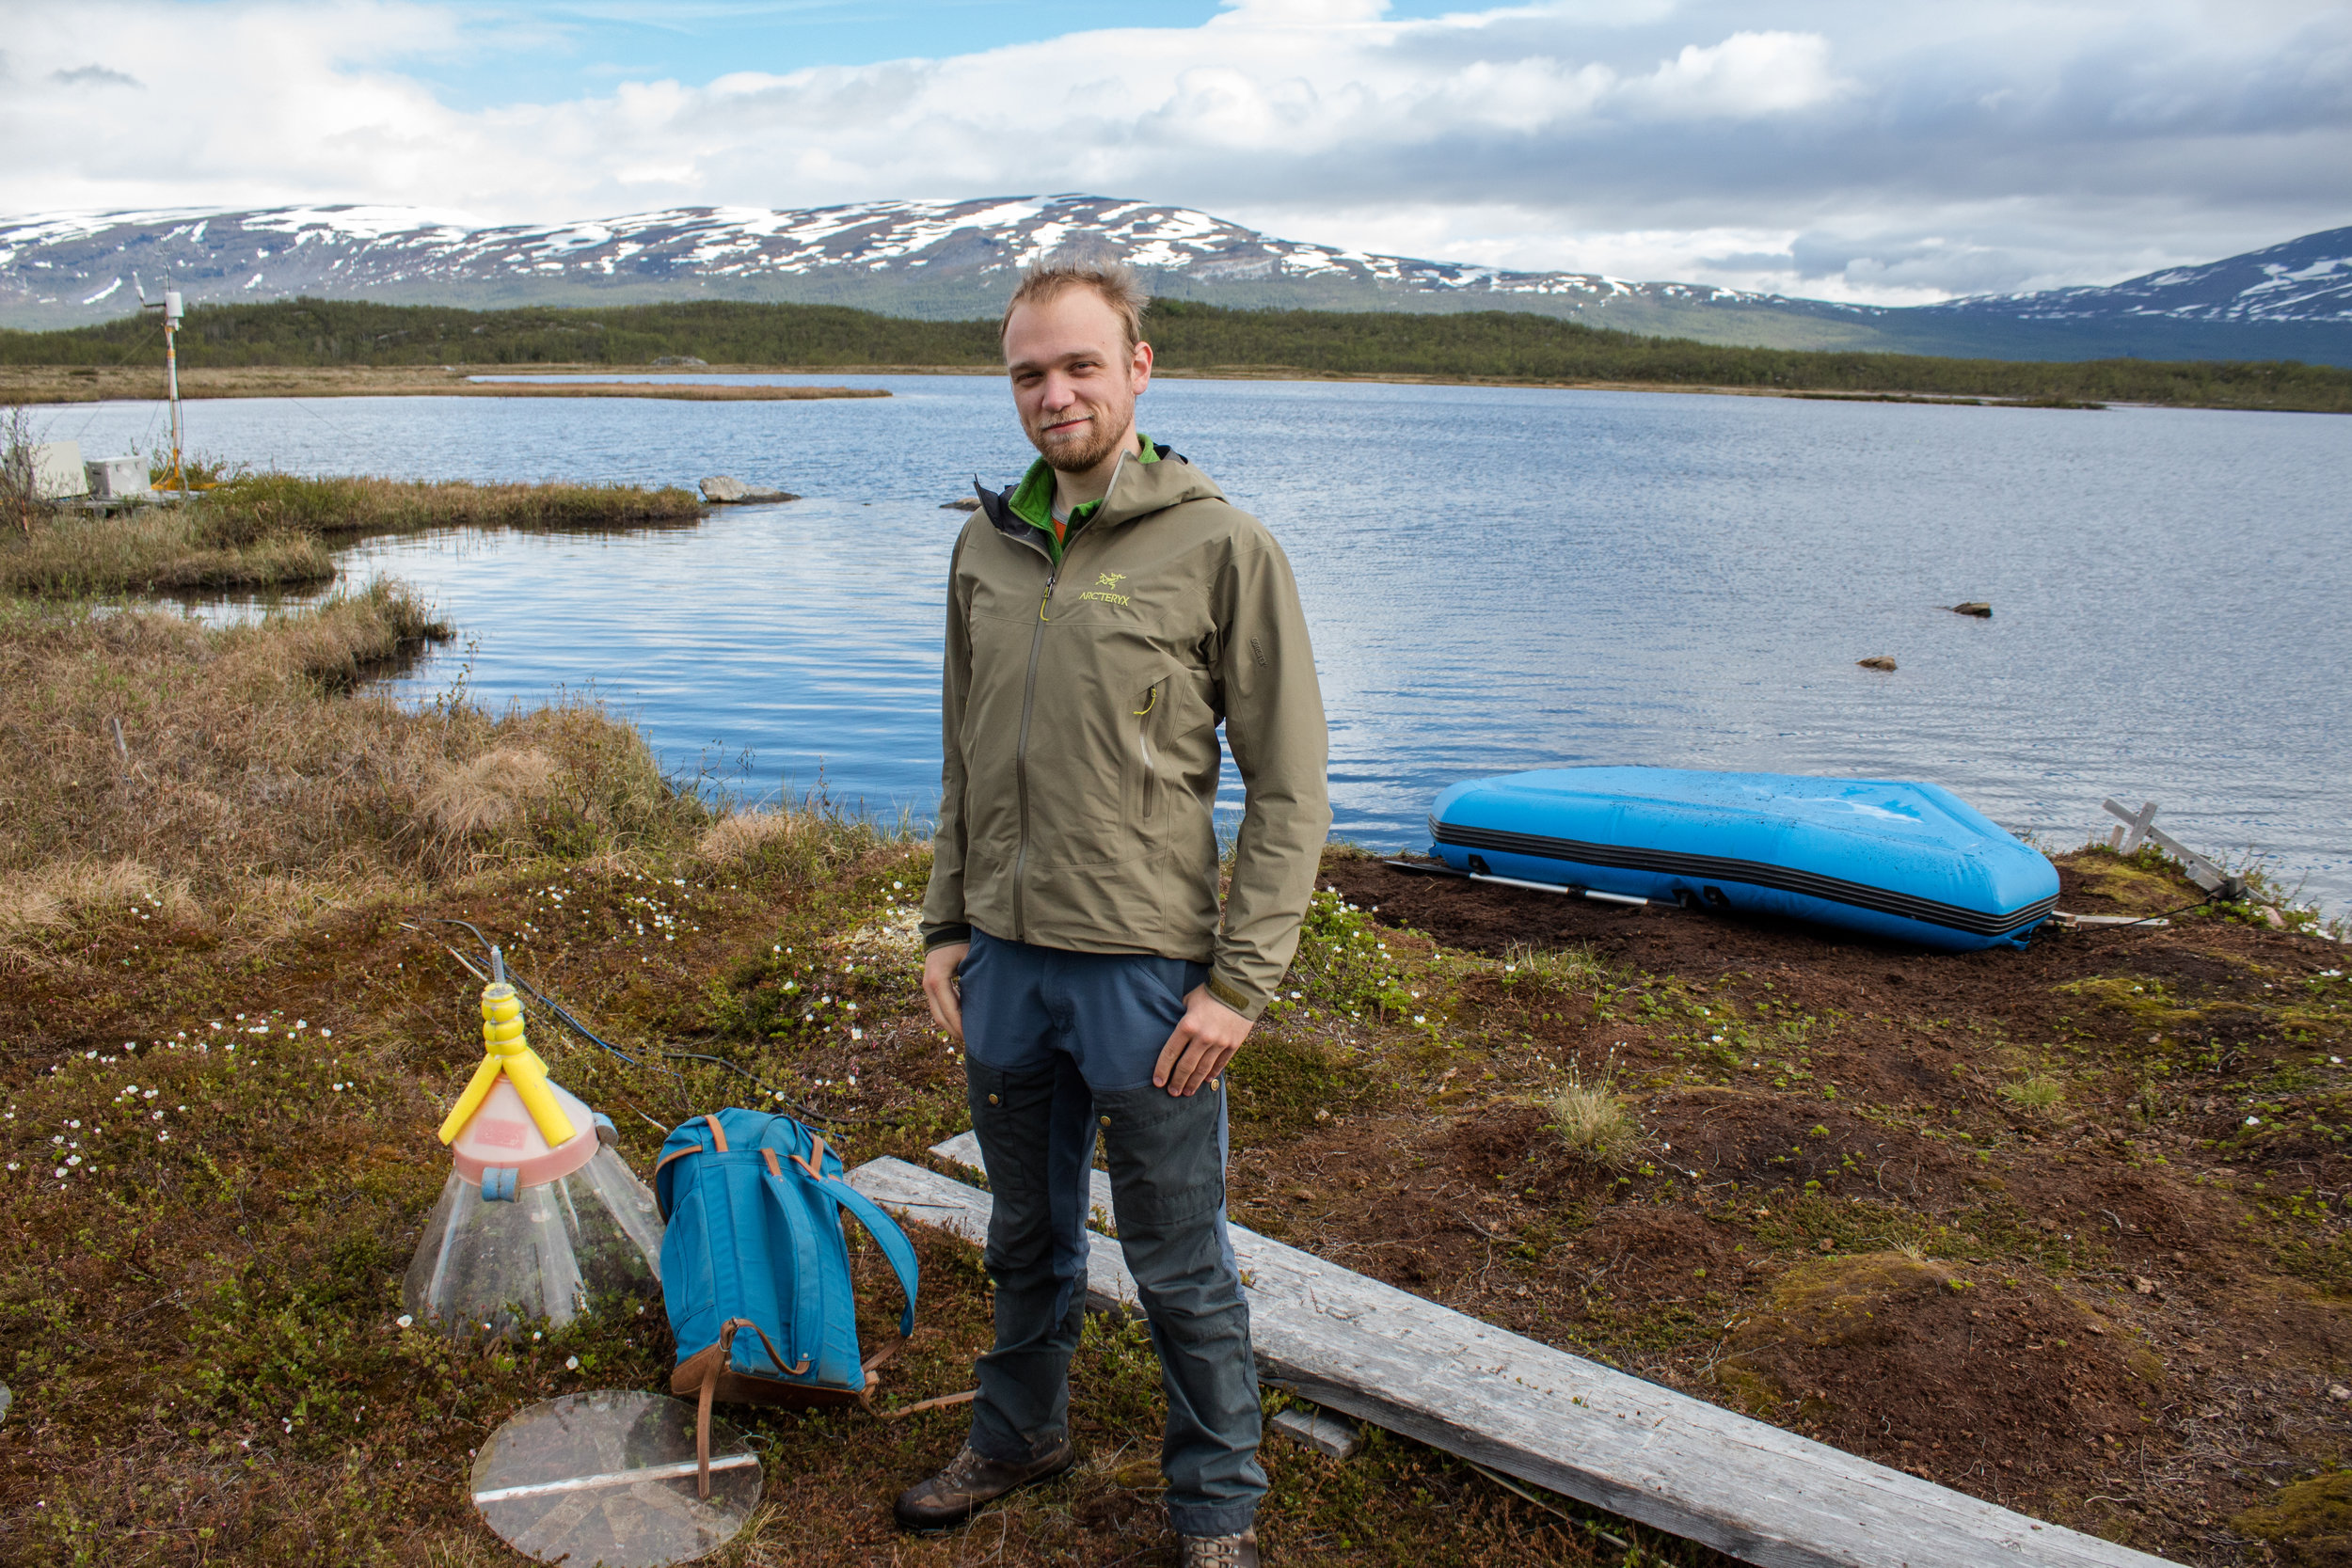 Joachim Jansen is a PhD student at Stockholm University who studies methane releases from Arctic lakes and wetlands.